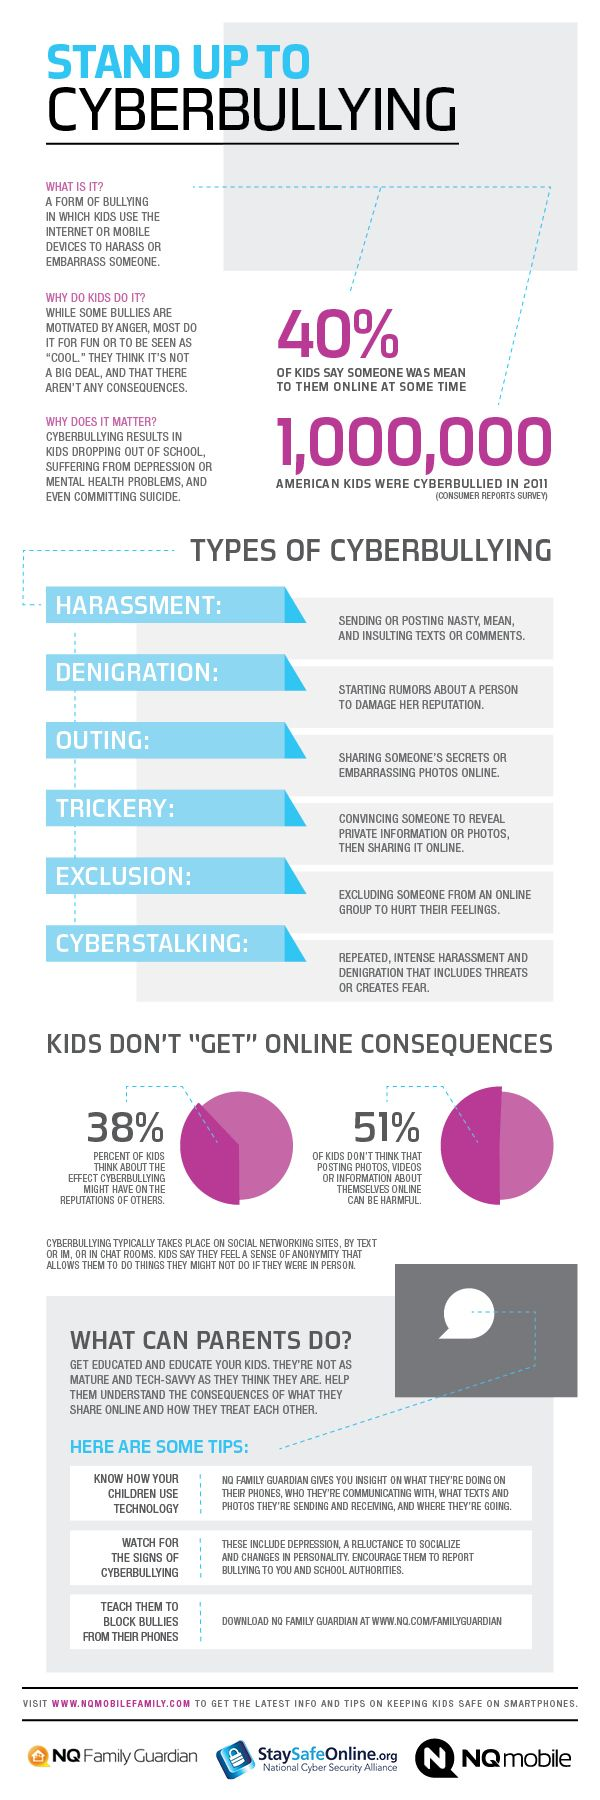 Infographic about cyberbullying; definition and types of cyberbullying, tips for students and parents